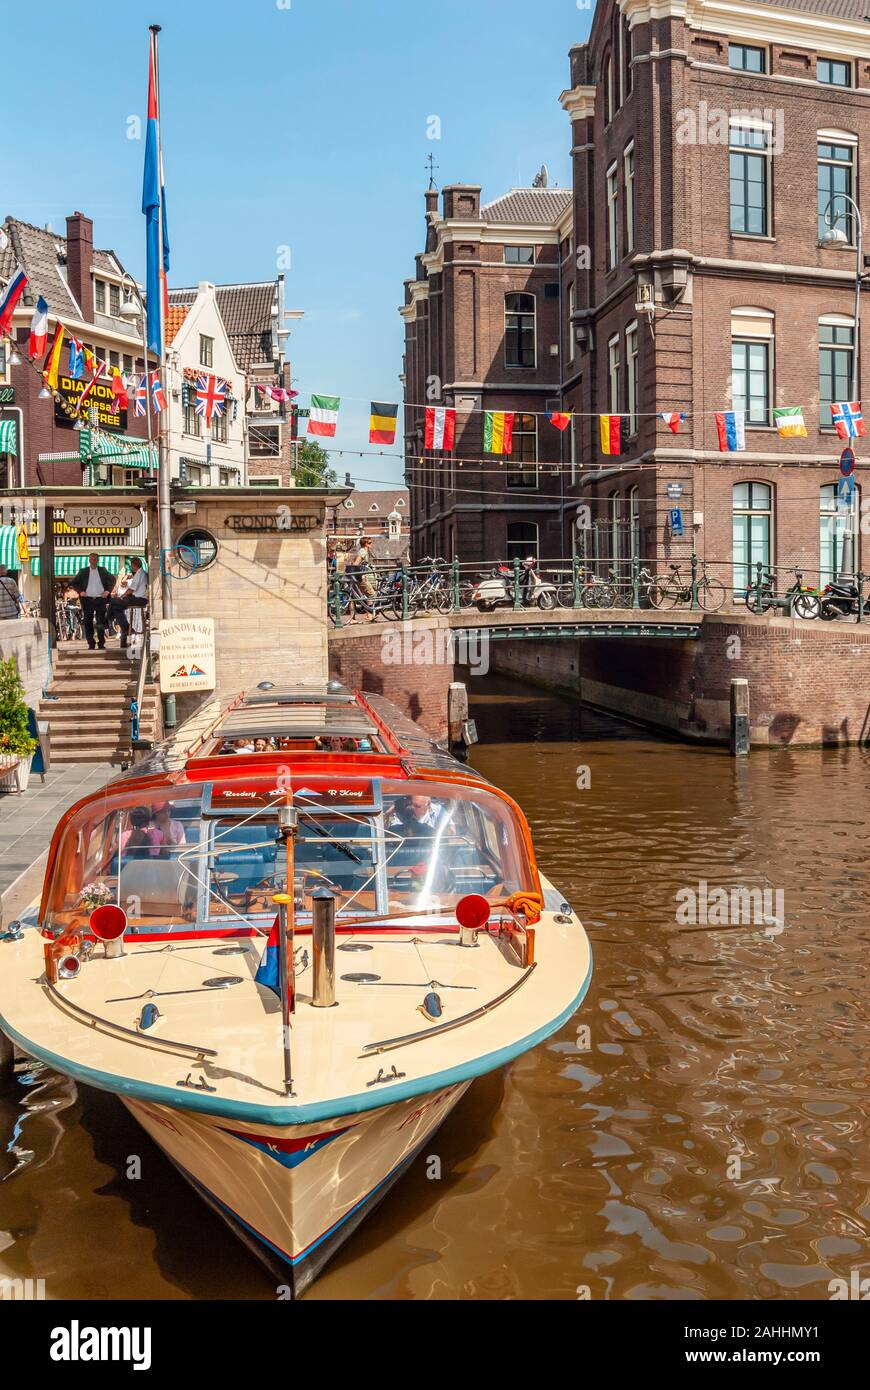 Typical sightseeing boats in a water channel in the city center of Amsterdam, Netherlands Stock Photo